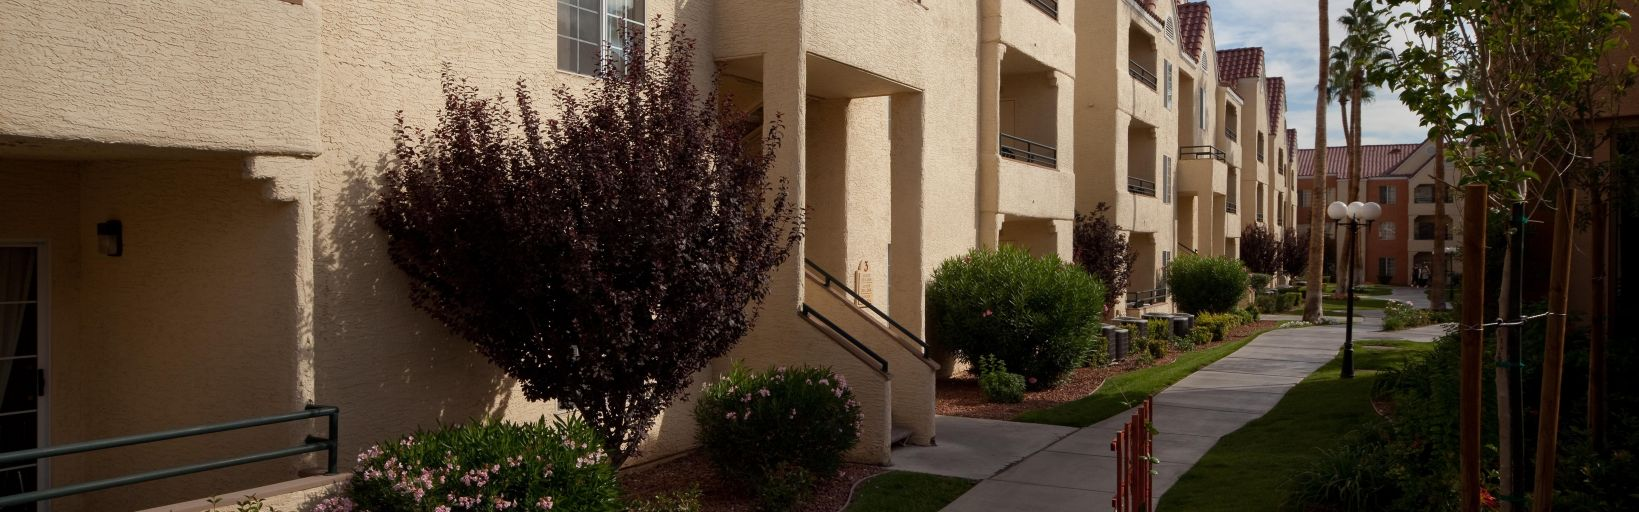 Rancho Destino Apartments Als Las Vegas Nv 2 Master  Bedroom. 2 master bedroom apartments las vegas   The Best Master 2017